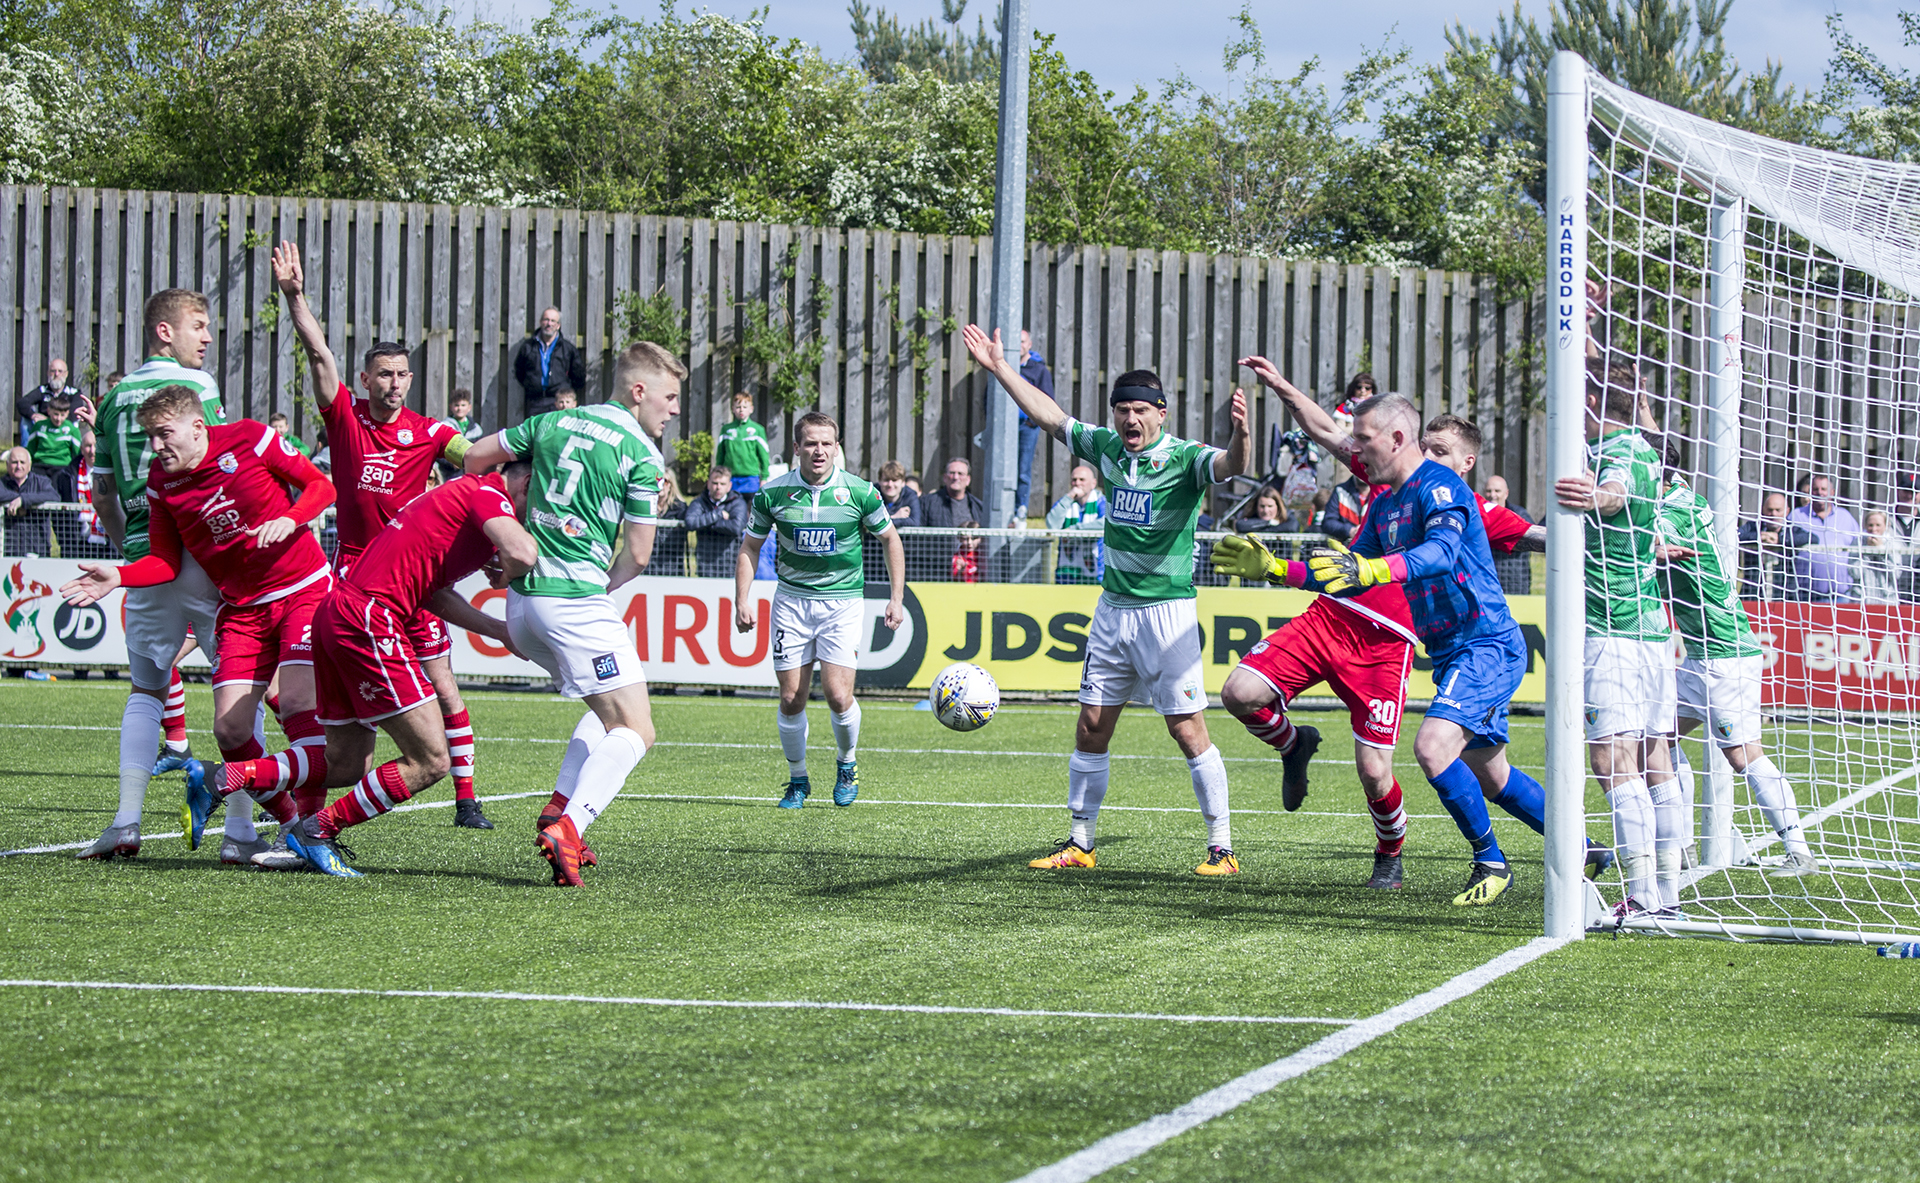 TNS players appeal for a foul | © NCM Media